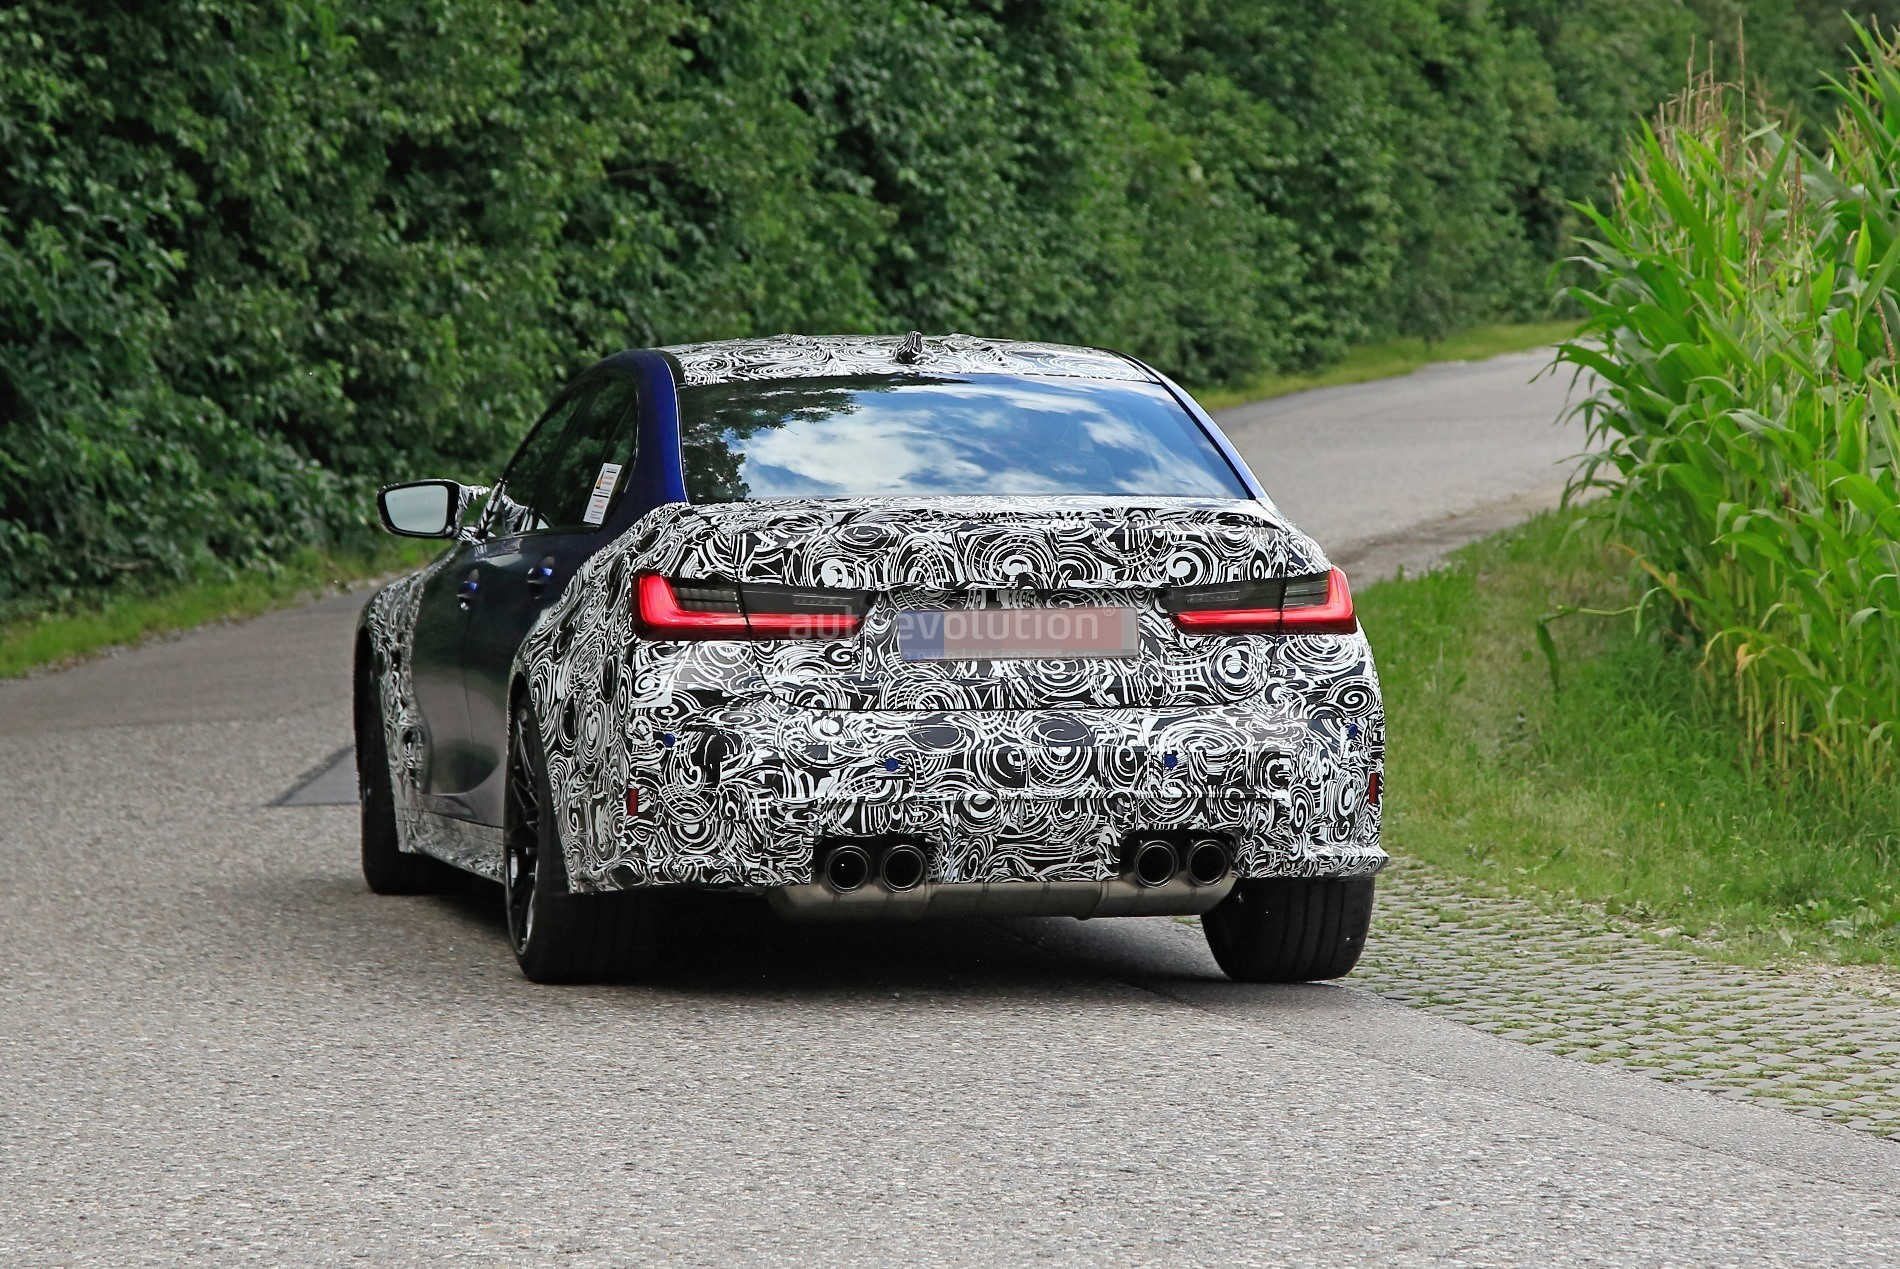 g80-bmw-m3-shows-ginormous-kidney-grille-in-new-spy-phots_9